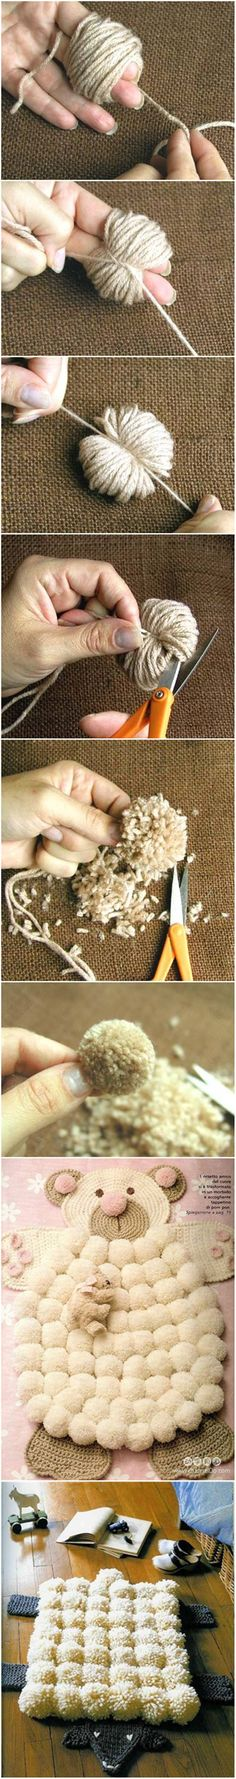 Creative Ideas - DIY Easy Pompoms with Your Own Fingers #craft #decor #pompom